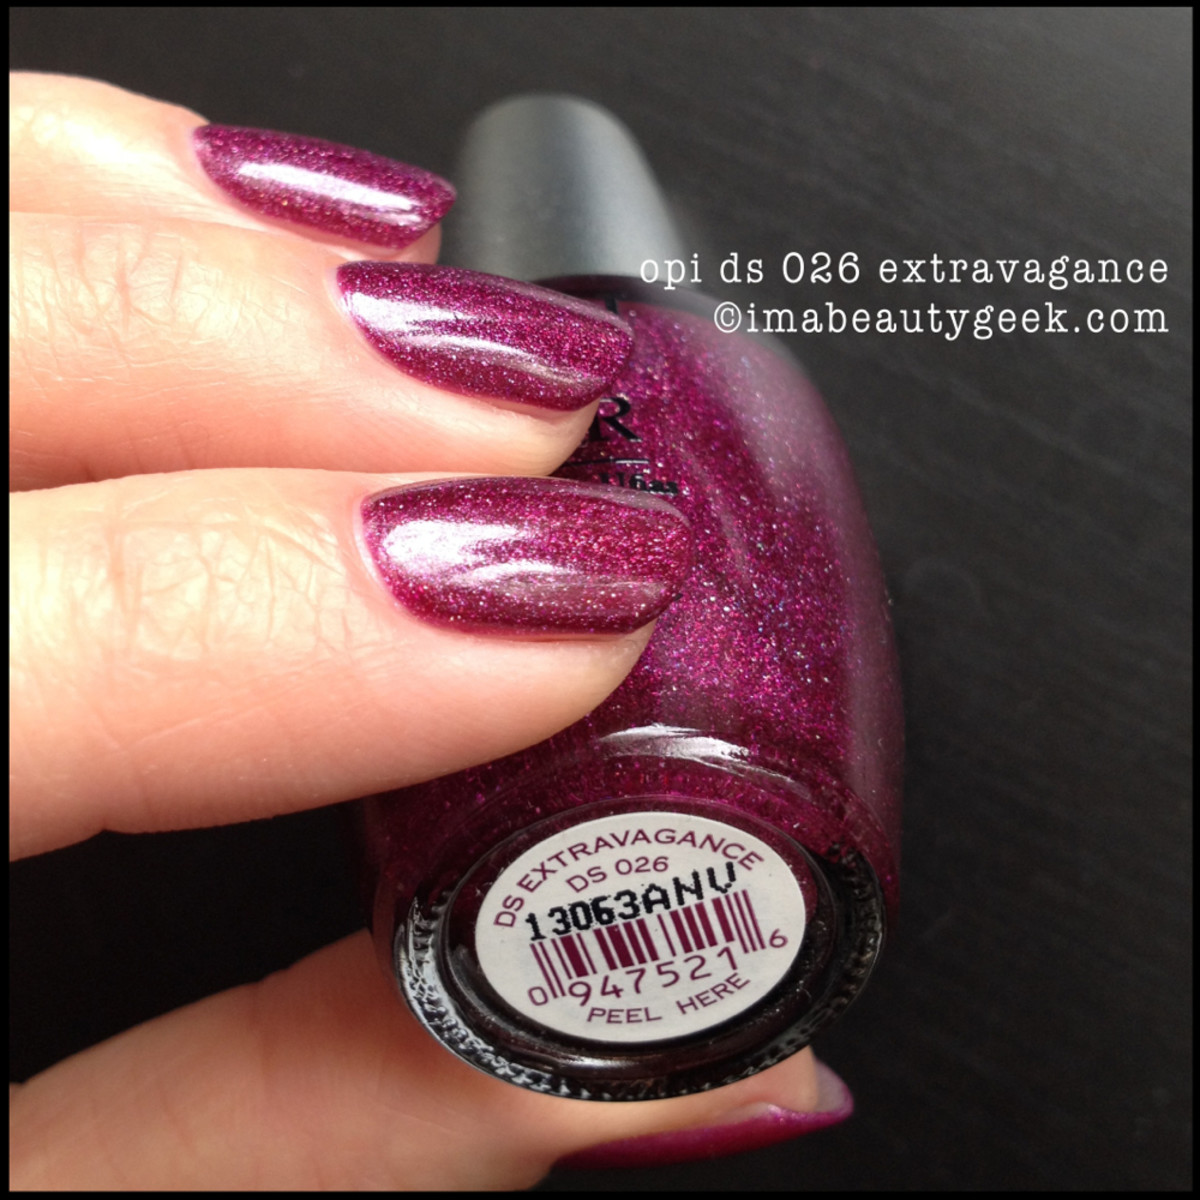 OPI Extravagance DS 026